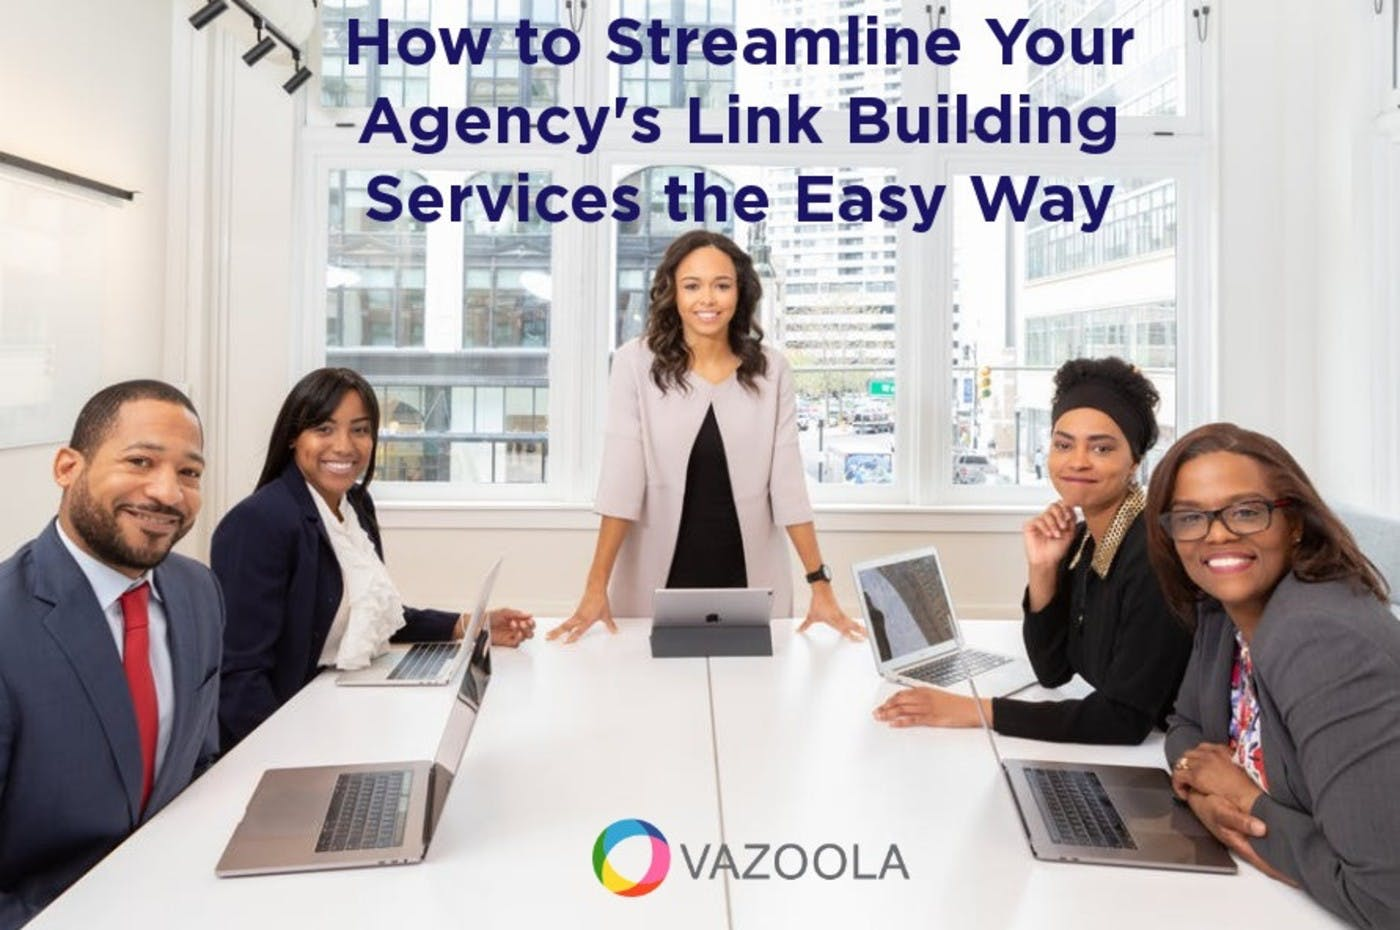 How to Streamline Your Agency's Link Building Services the Easy Way